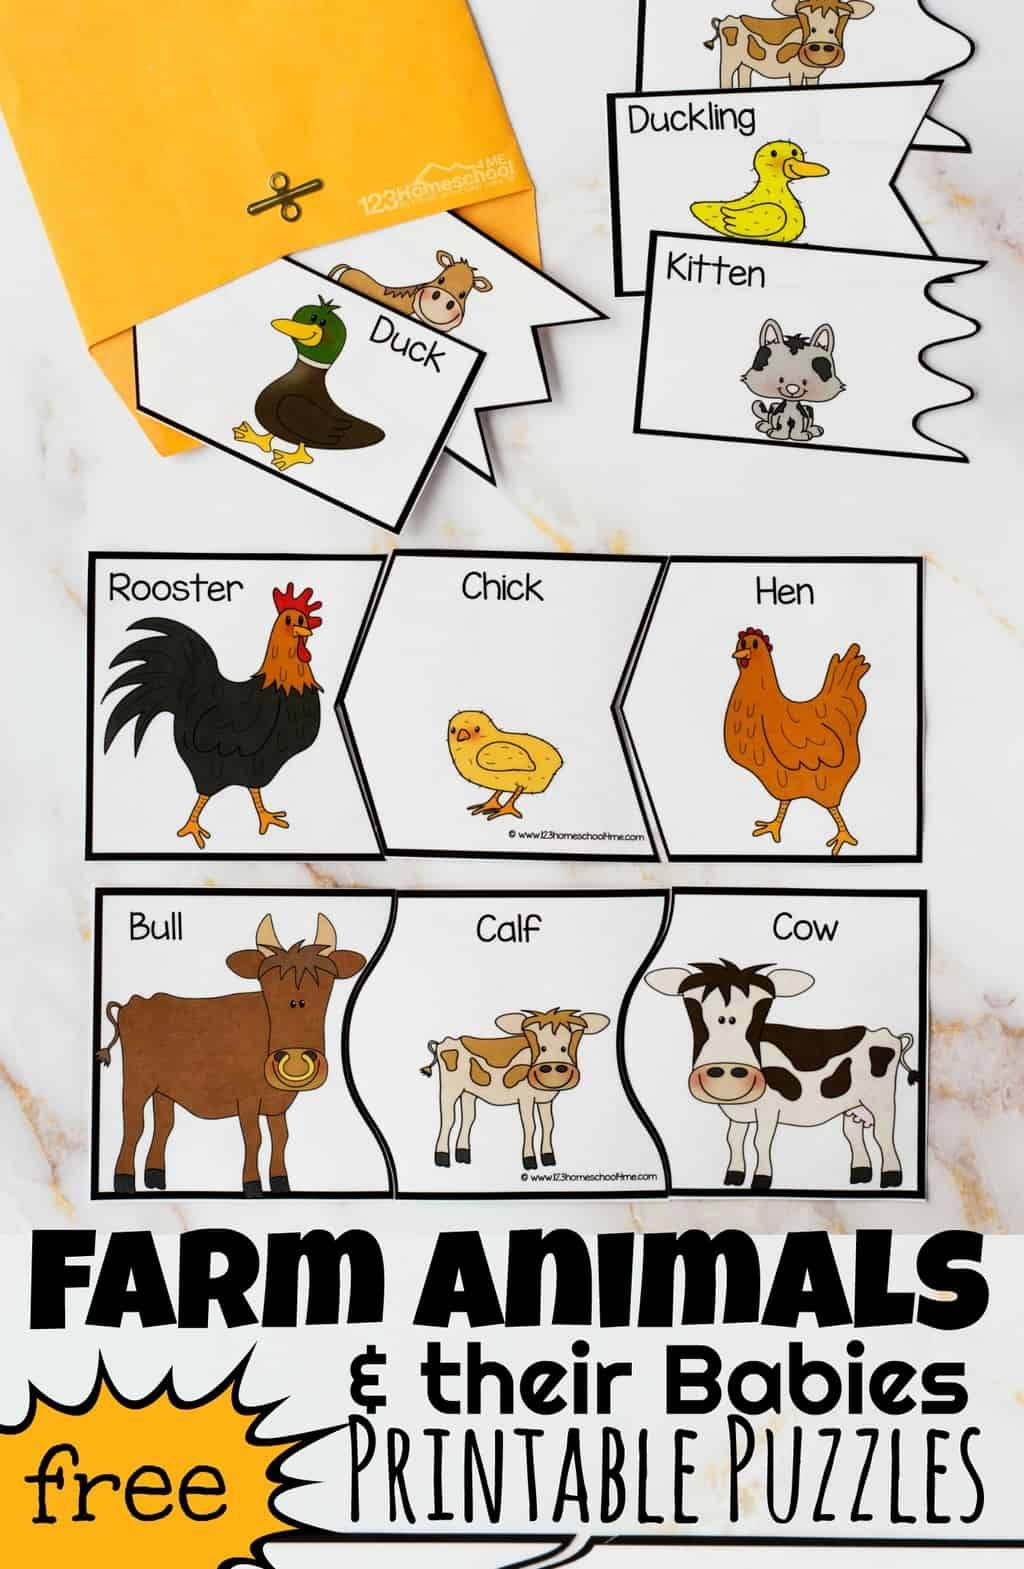 Farm Animals And Their Babies Printables Puzzles In